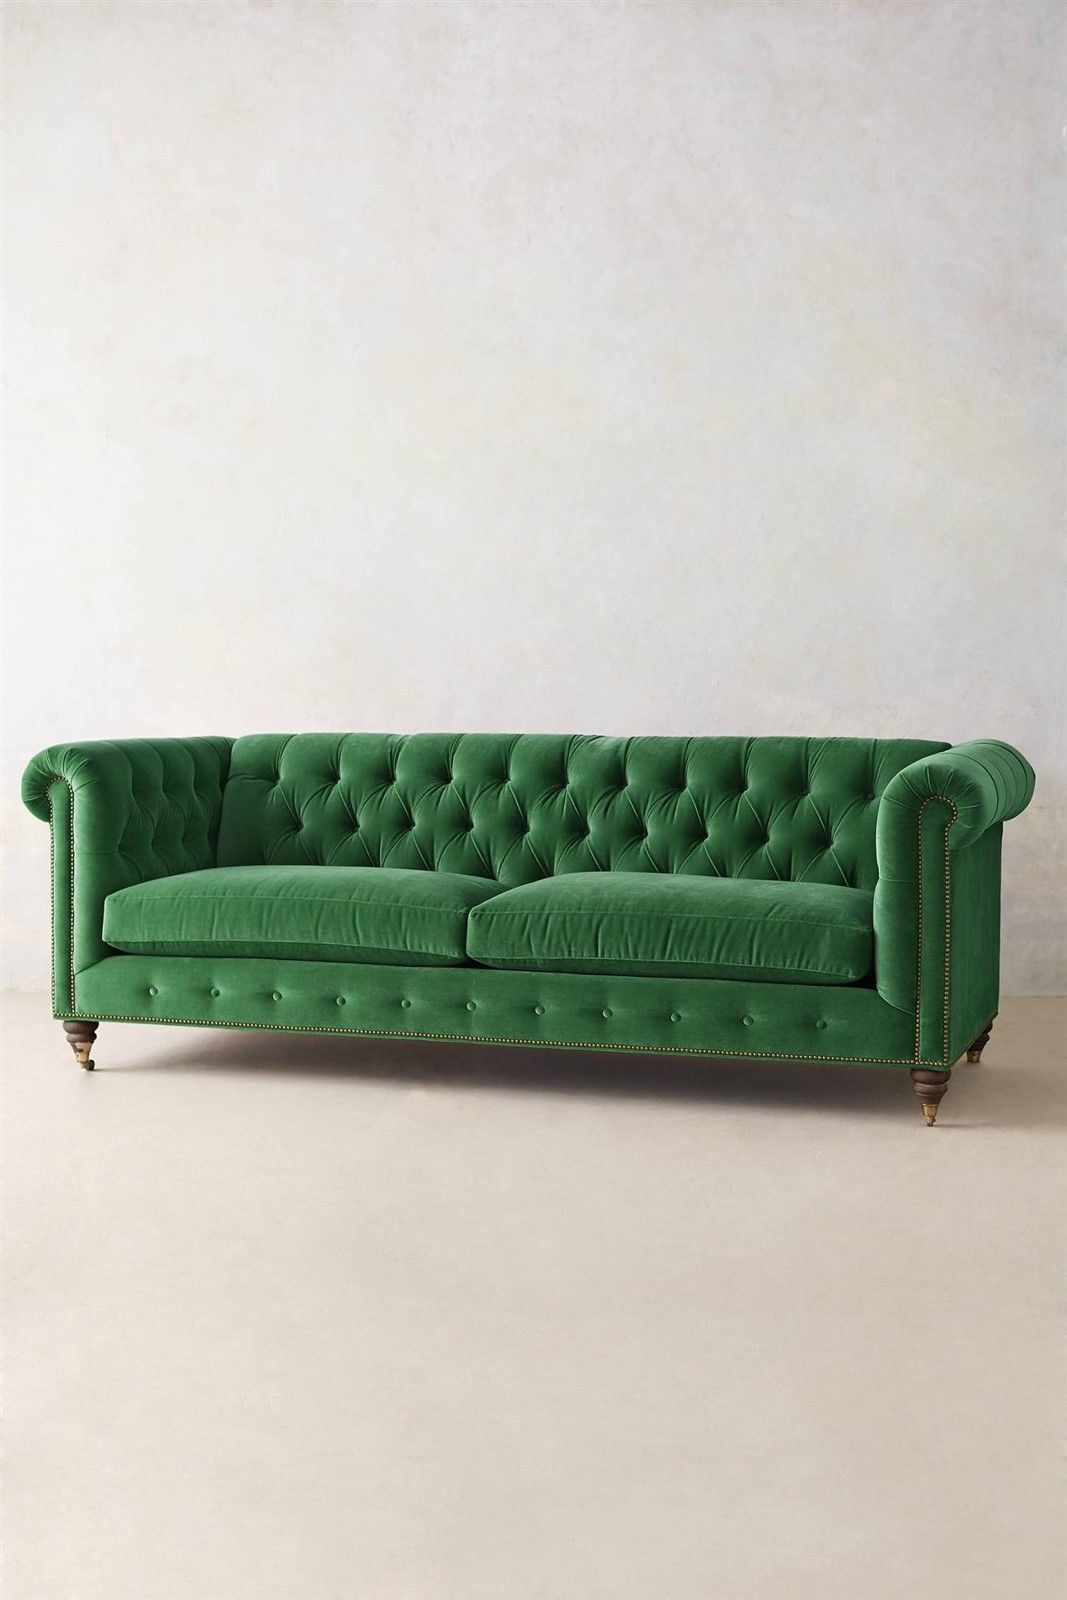 Velvet Tufted Chesterfield Sofa Couch Settee Feather Down Cushion Emerald Green Ebay